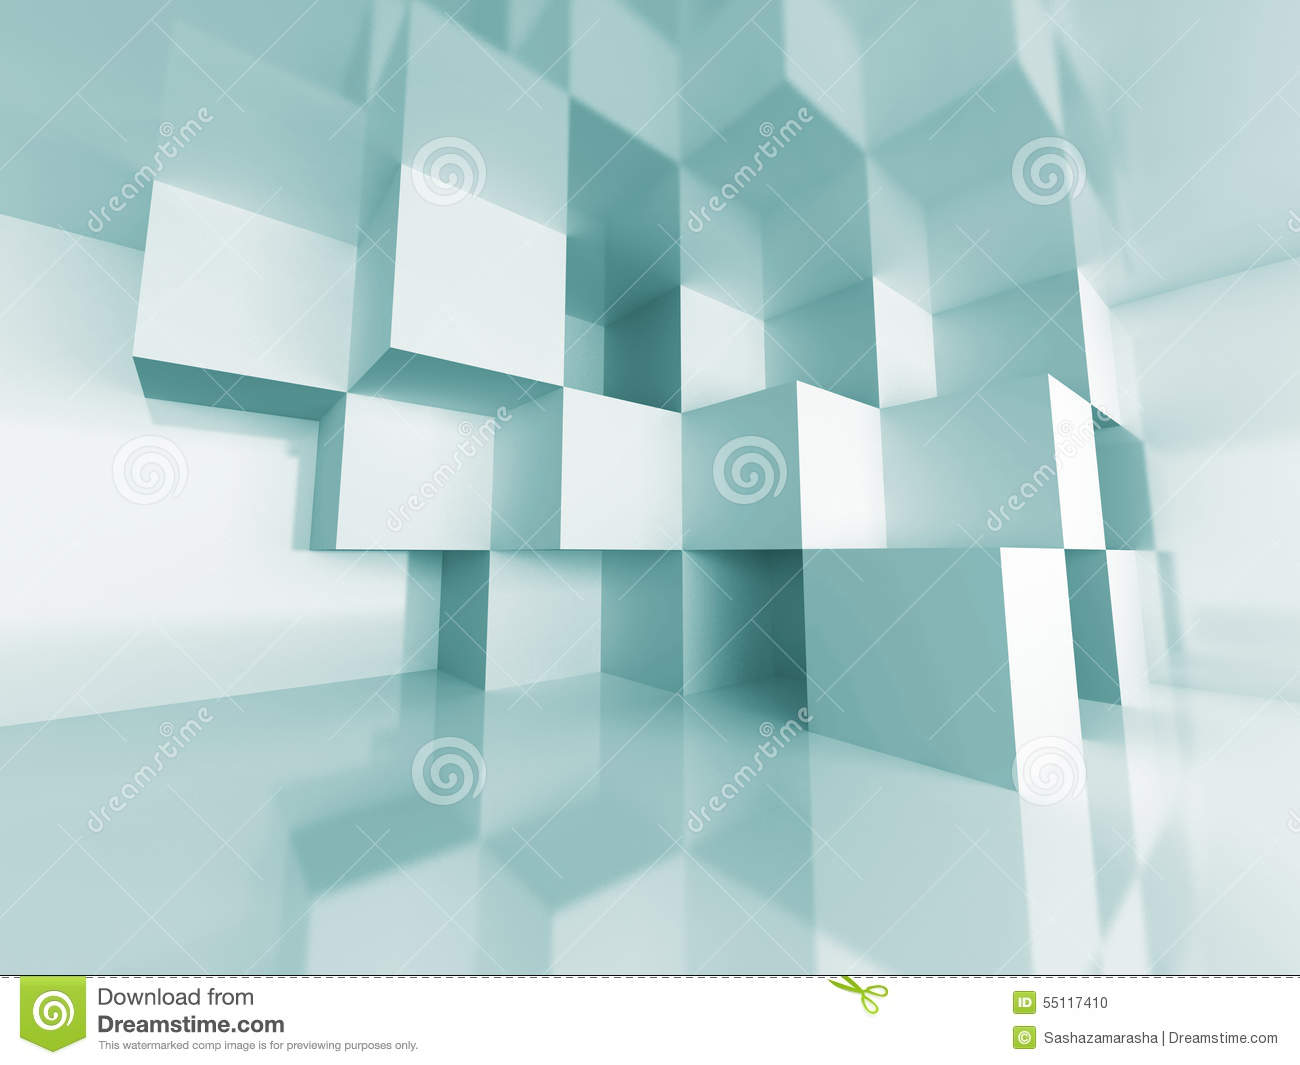 Free Interior Decoration Design Backgrounds For Powerpoint With ...